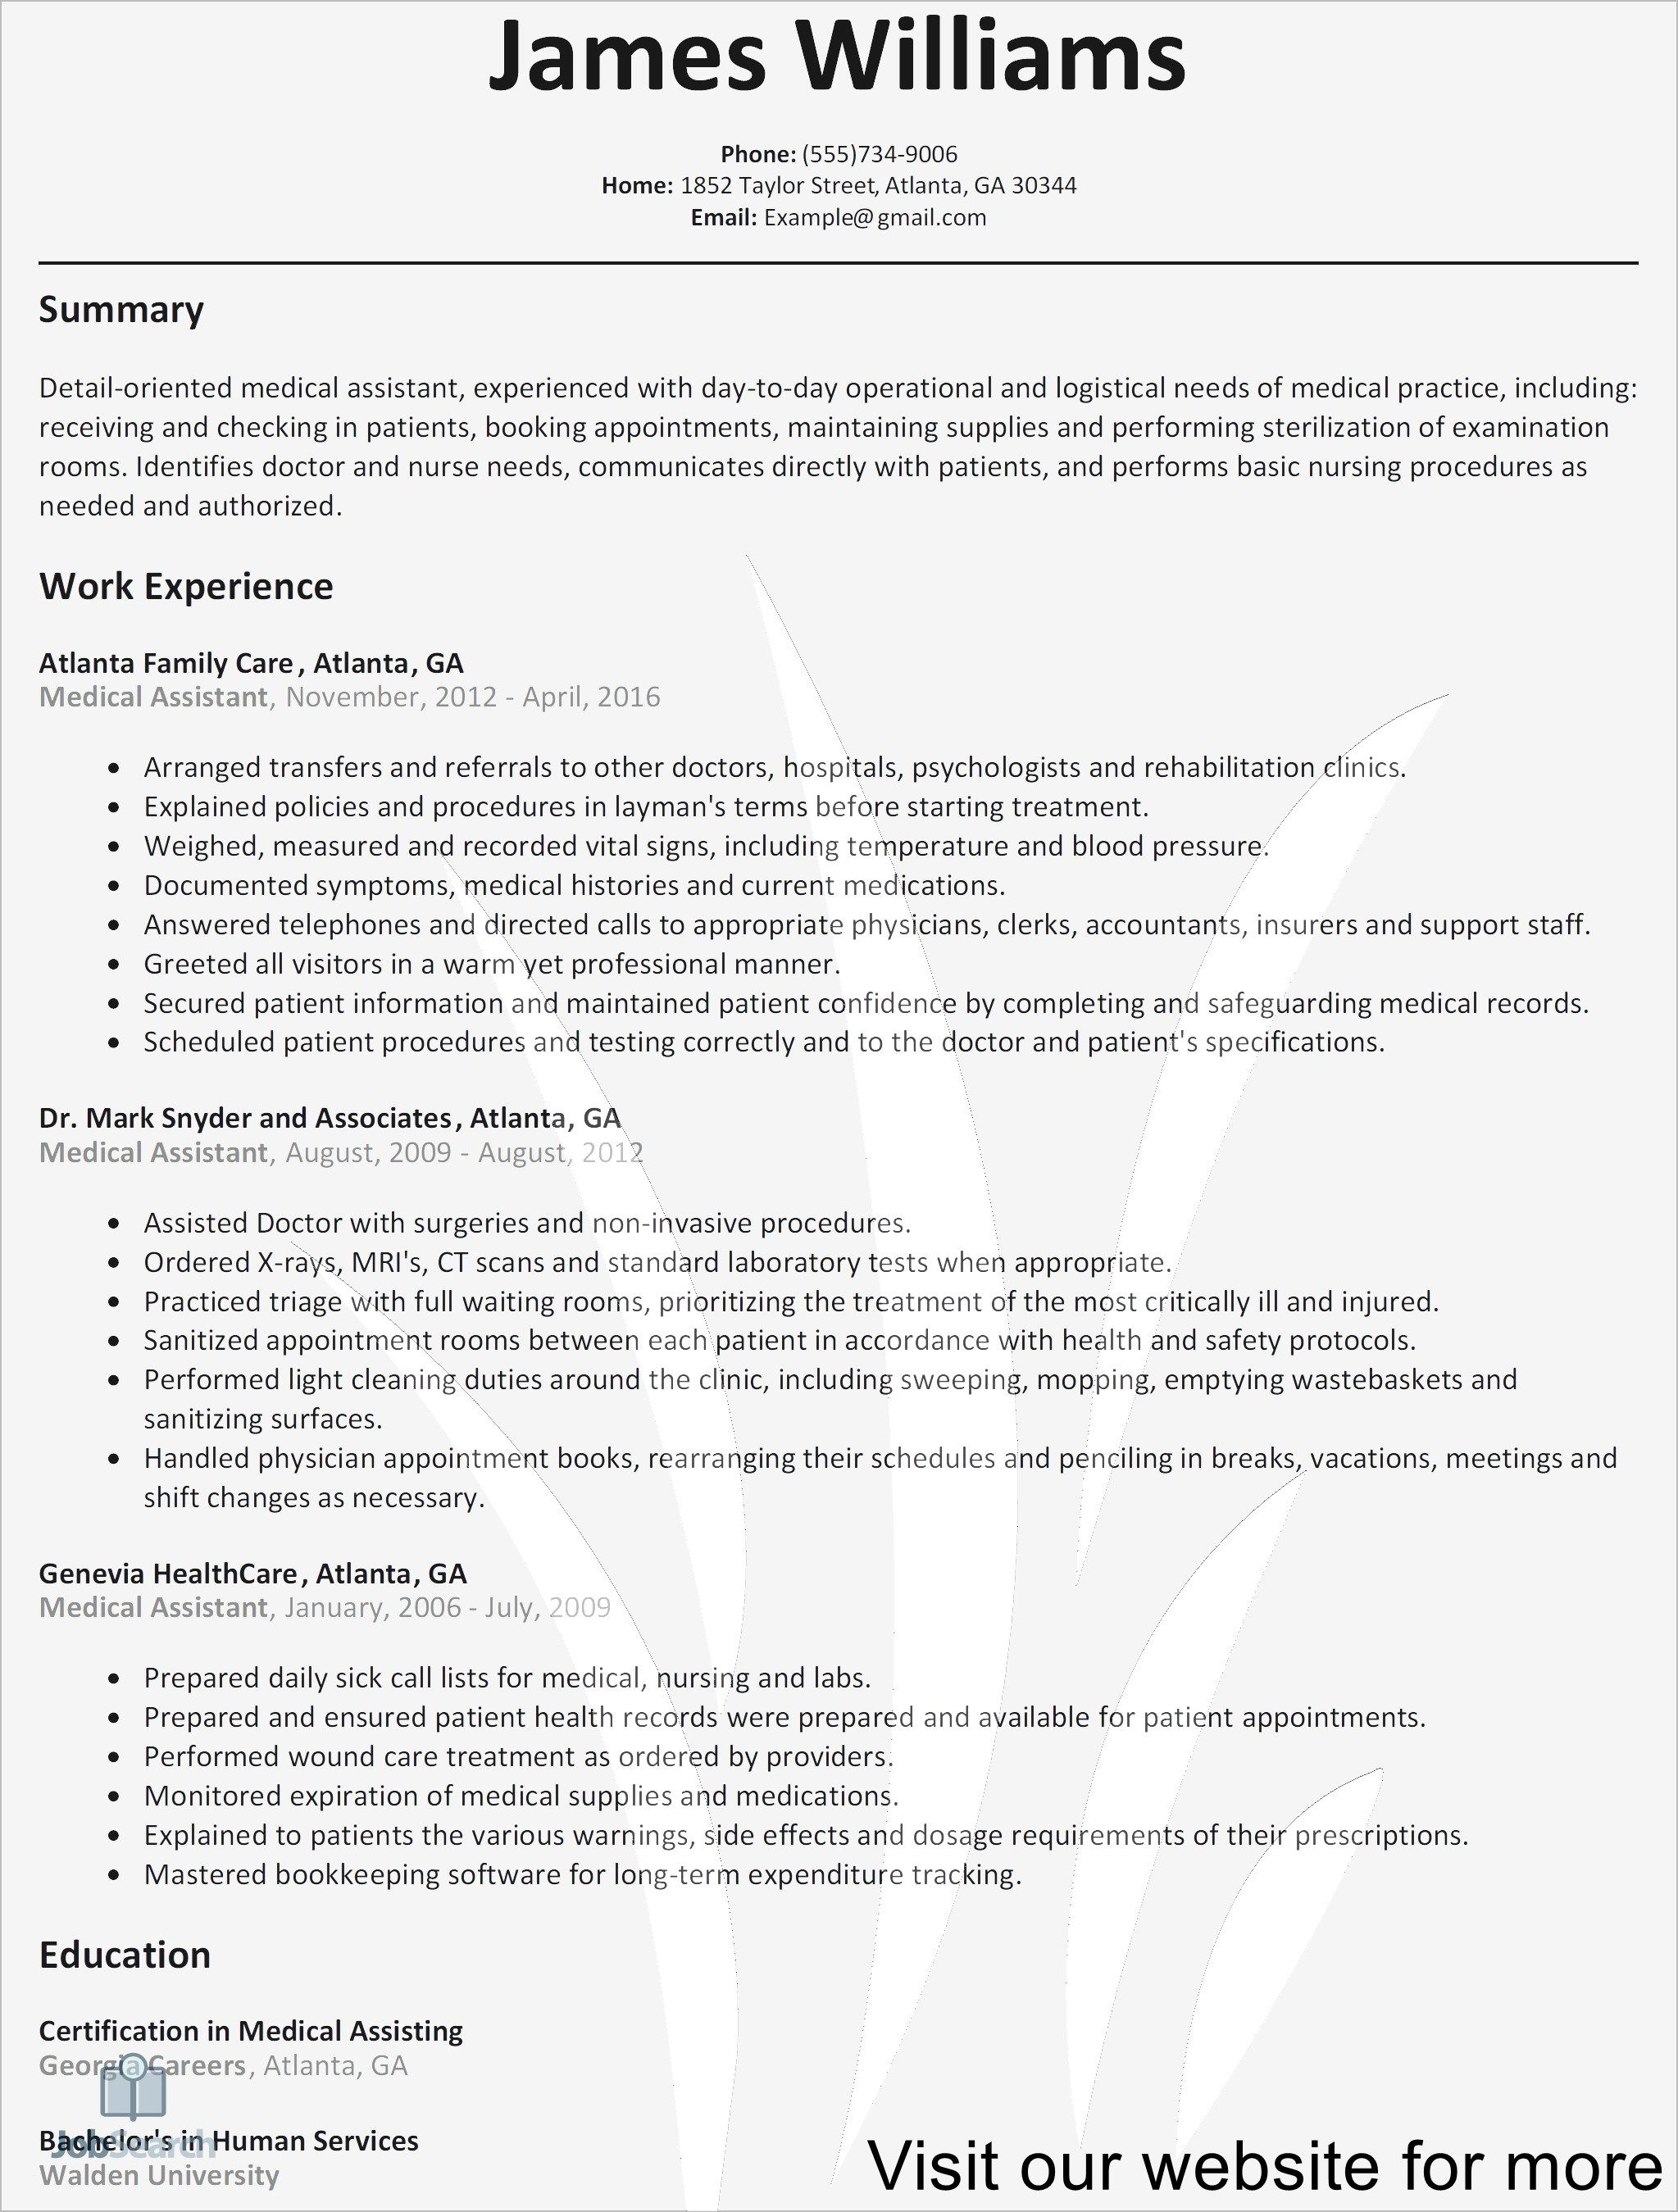 Easy Resume Examples Best Resume Template Professional Resume Template Job Resume Template